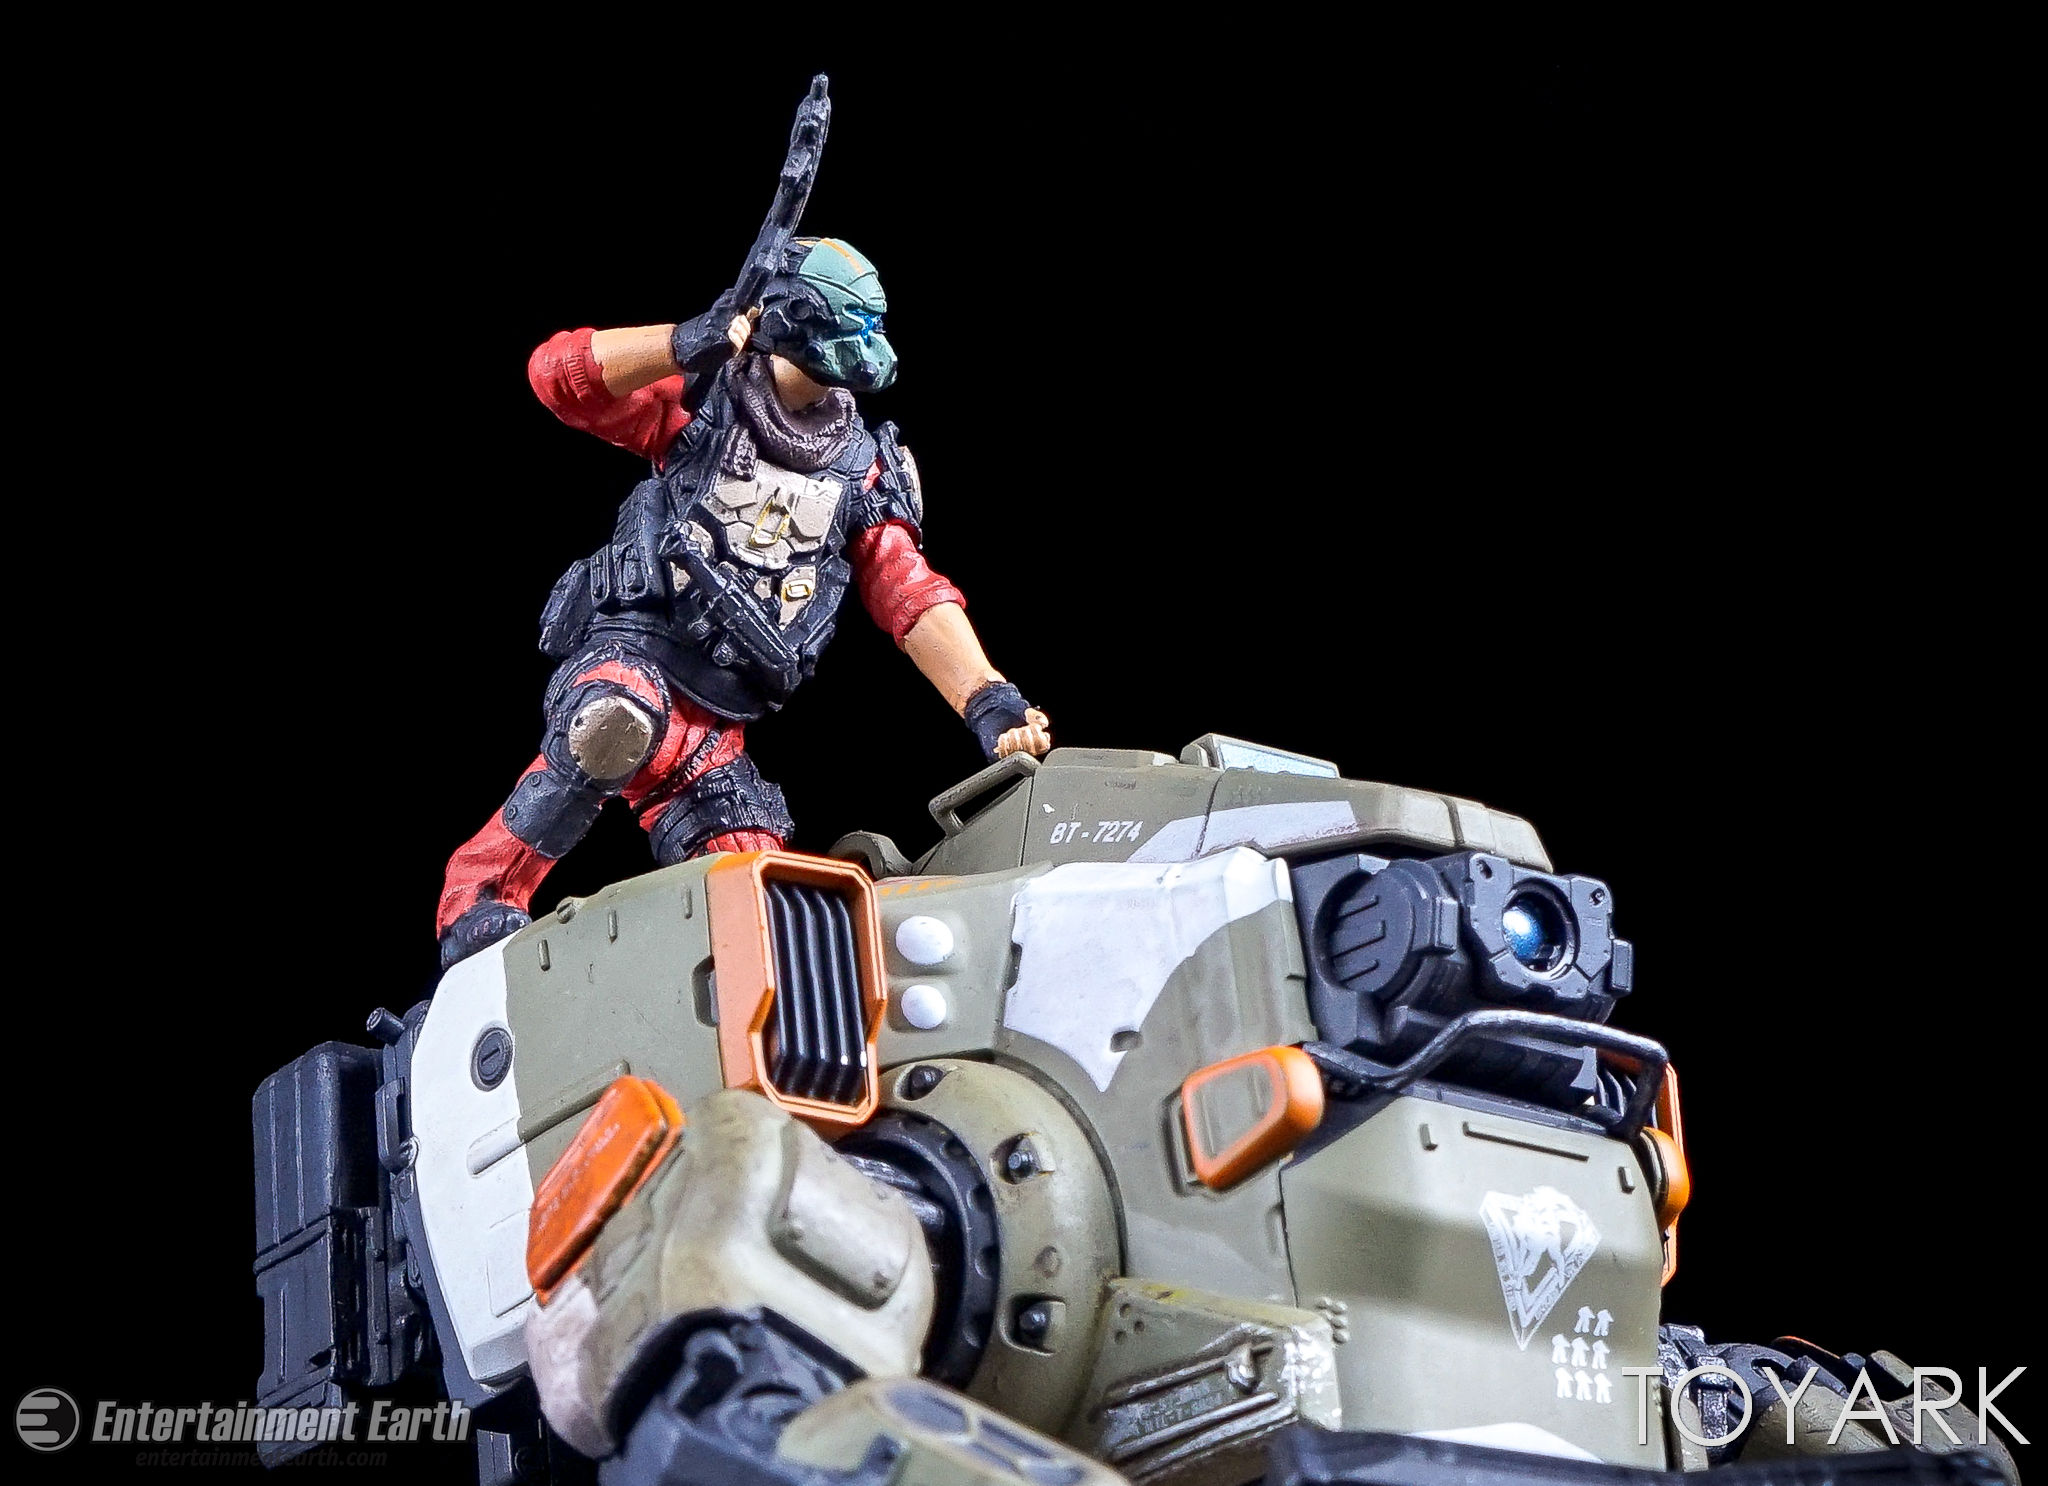 http://news.toyark.com/wp-content/uploads/sites/4/2017/04/McFarlane-BT-7274-Titanfall-2-Figure-024.jpg